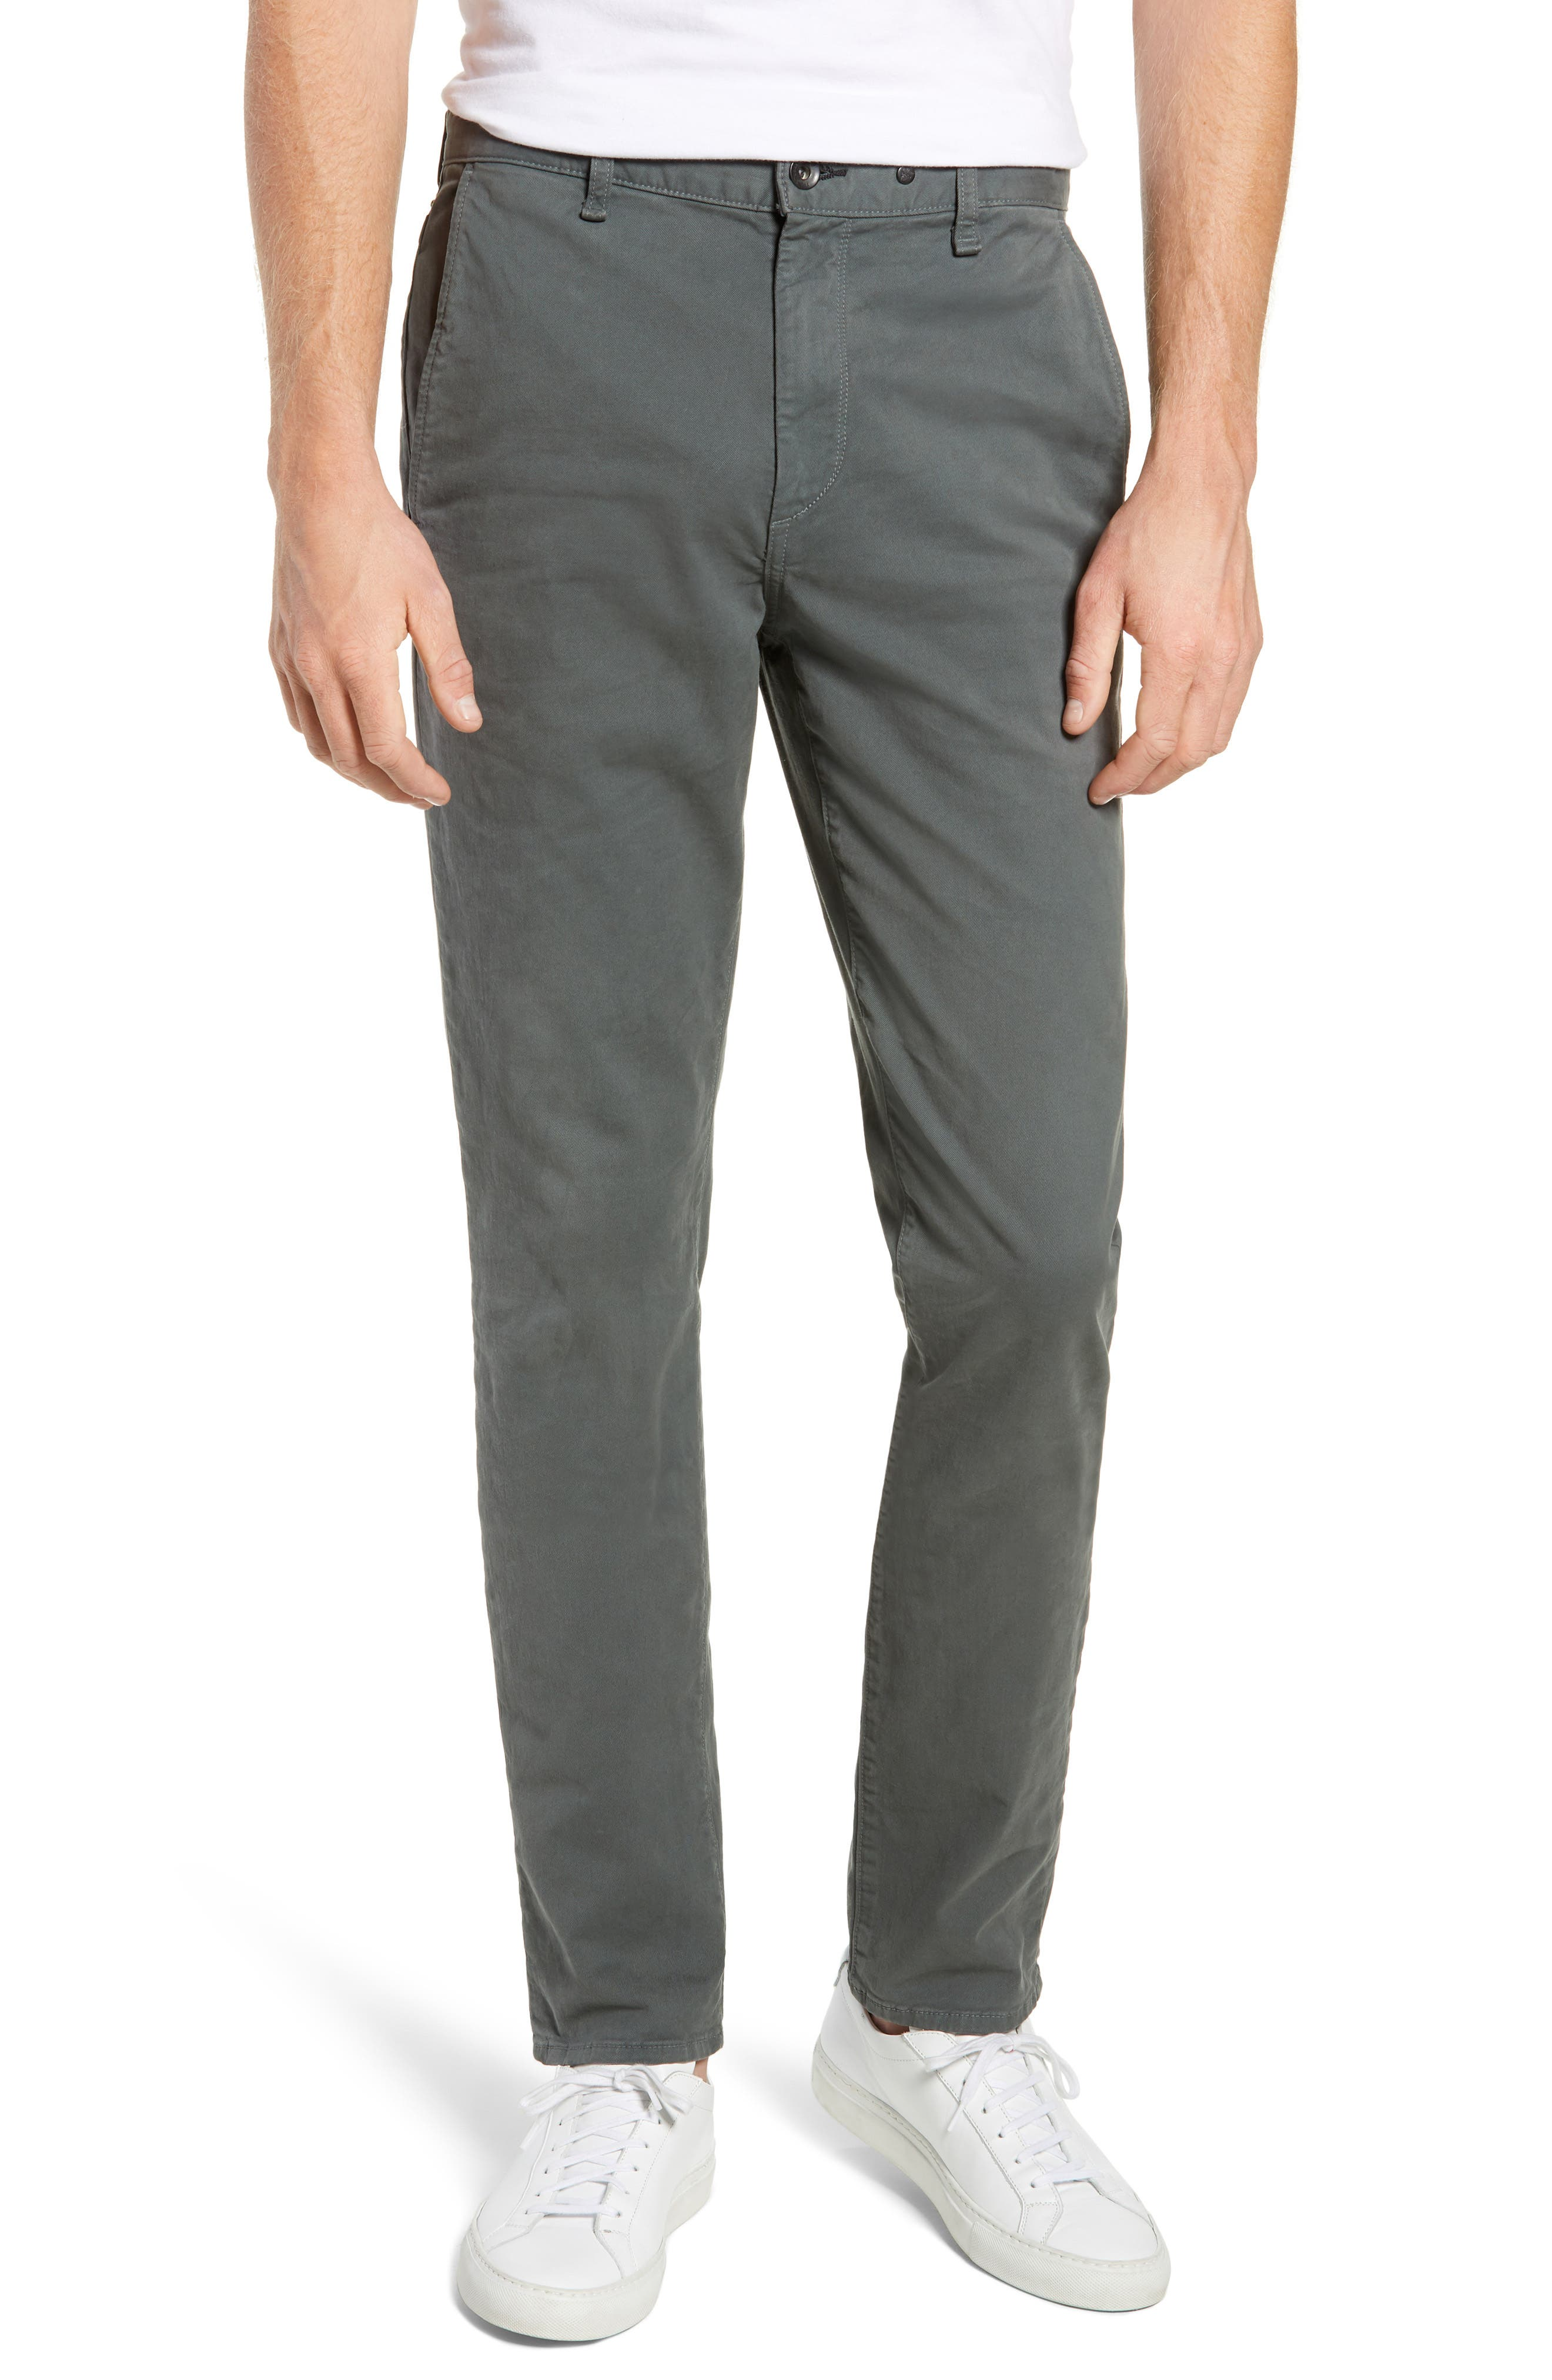 Fit 2 Slim Fit Chinos,                             Main thumbnail 1, color,                             TORREY PINE